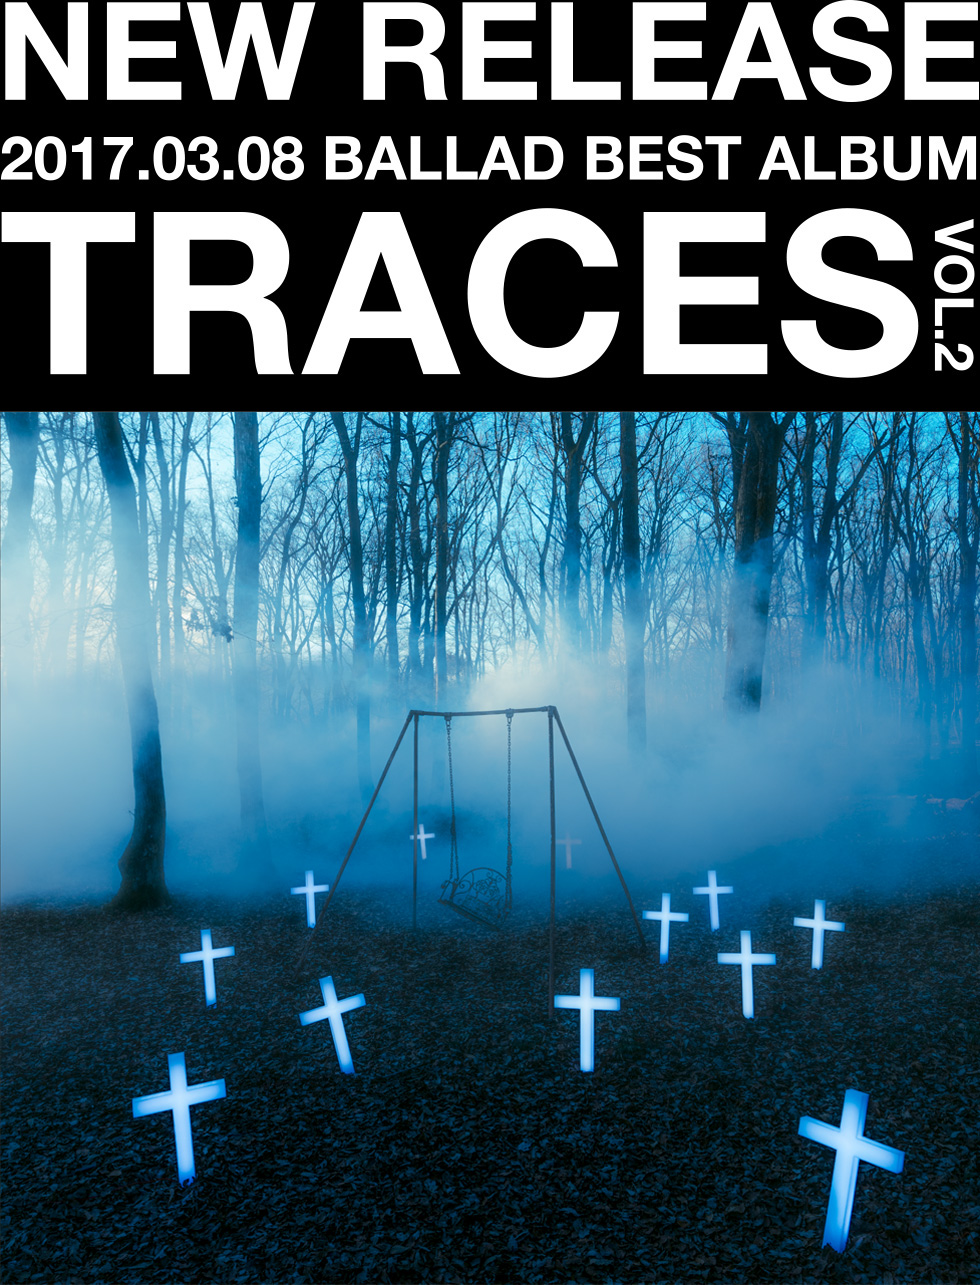 2017.3.8 RELEASE the GazettE 15TH ANNIVERSARY BEST ALBUM「TRACES VOL.2」